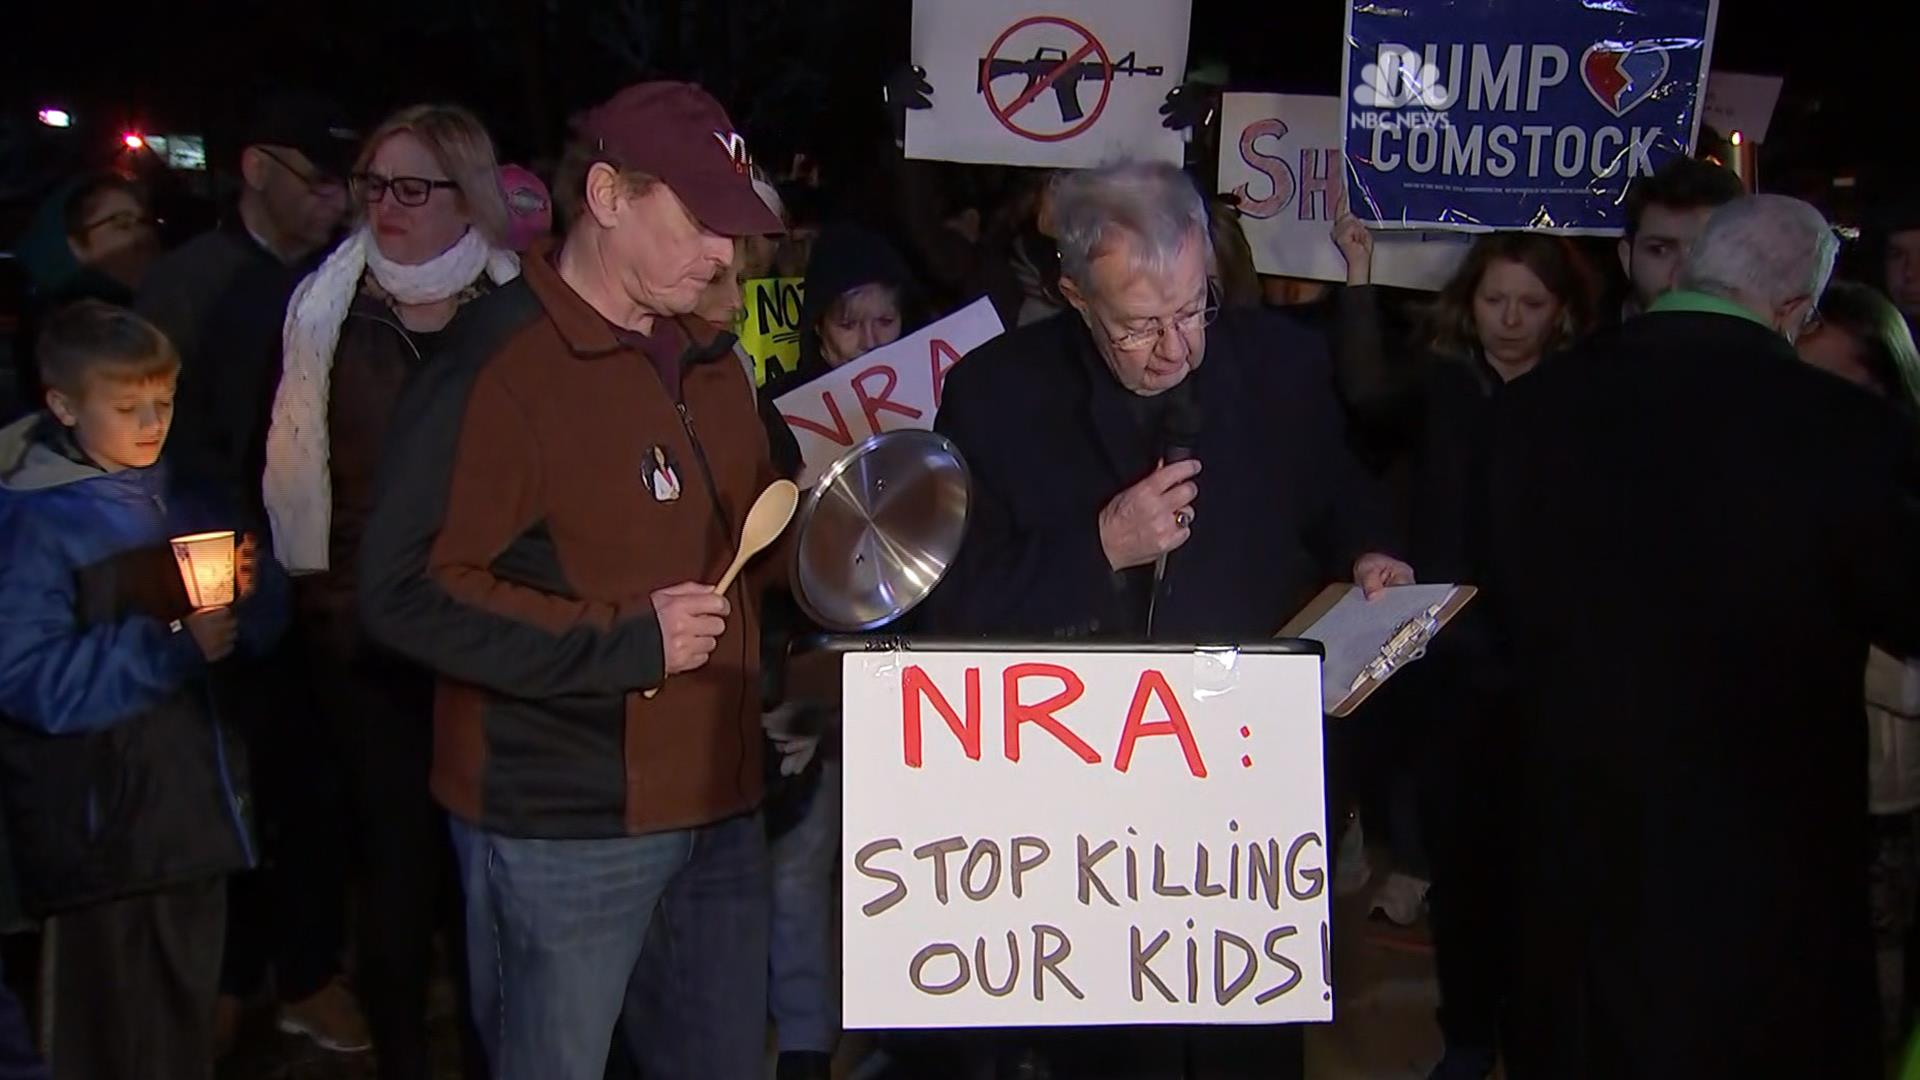 Protesters rally outside NRA headquarters - NBC News